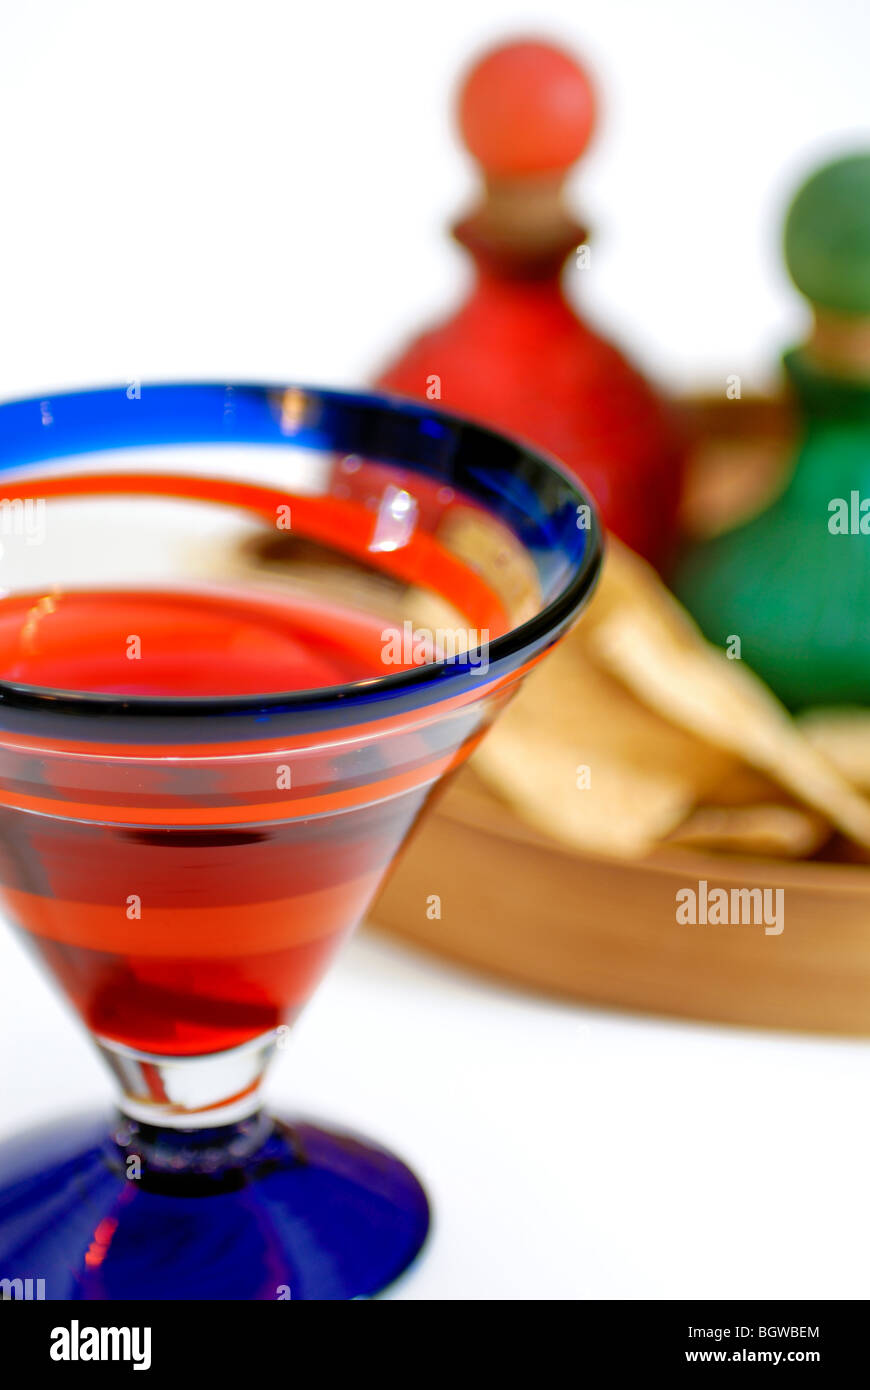 Colorful glassware holds a margarita, and sits near a tray containing nacho chips and more glassware. - Stock Image